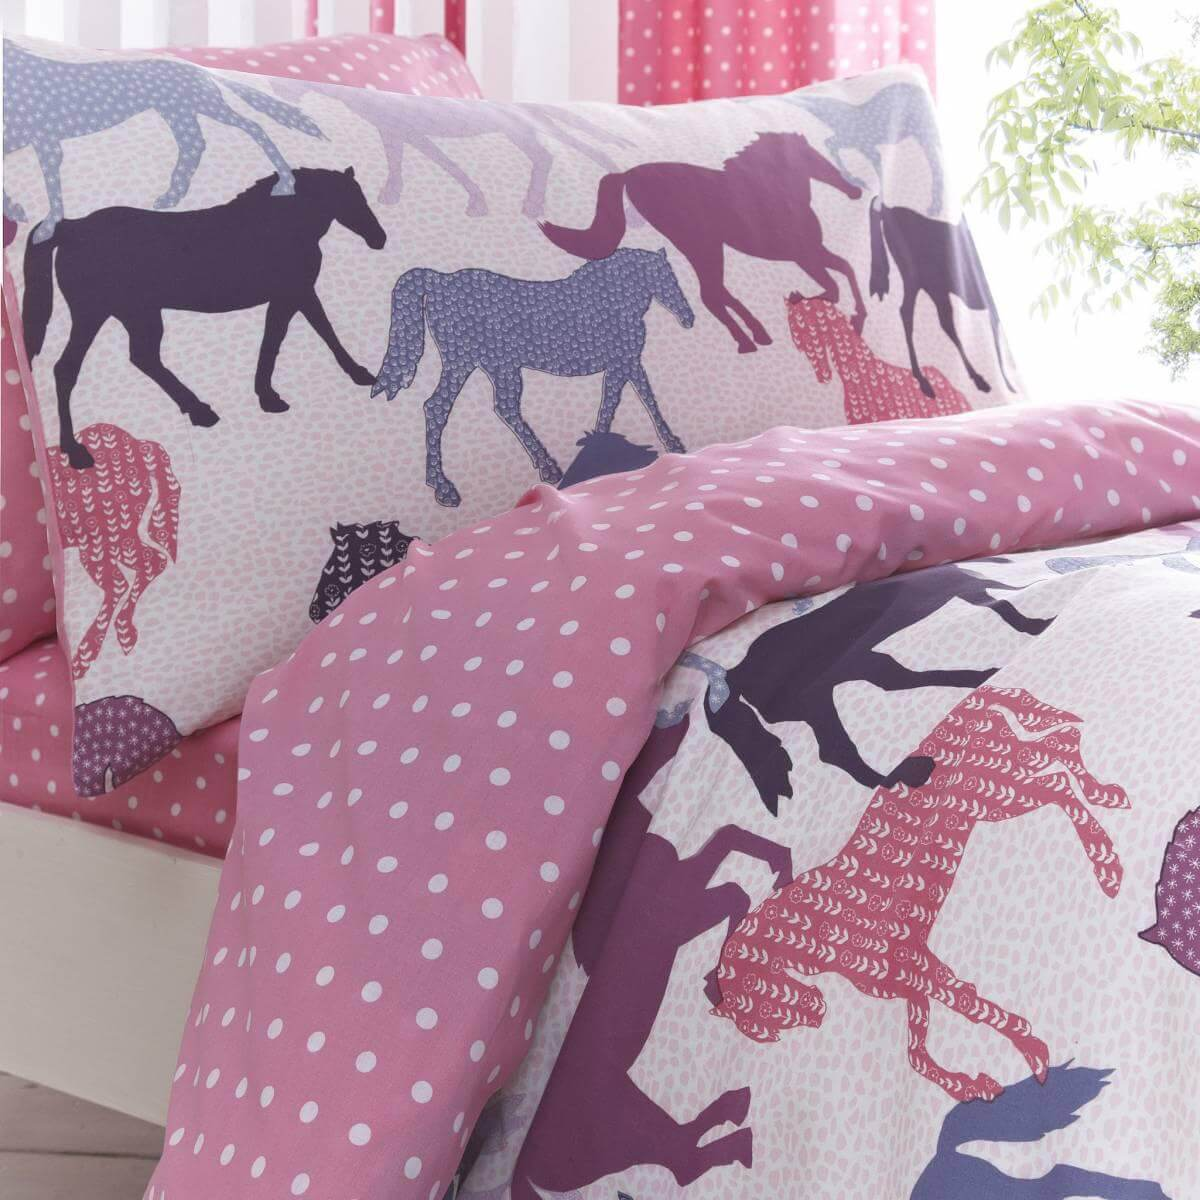 Girls Western Bedding | Horse Bedding for Girls Room | Horse Bedding for Girls